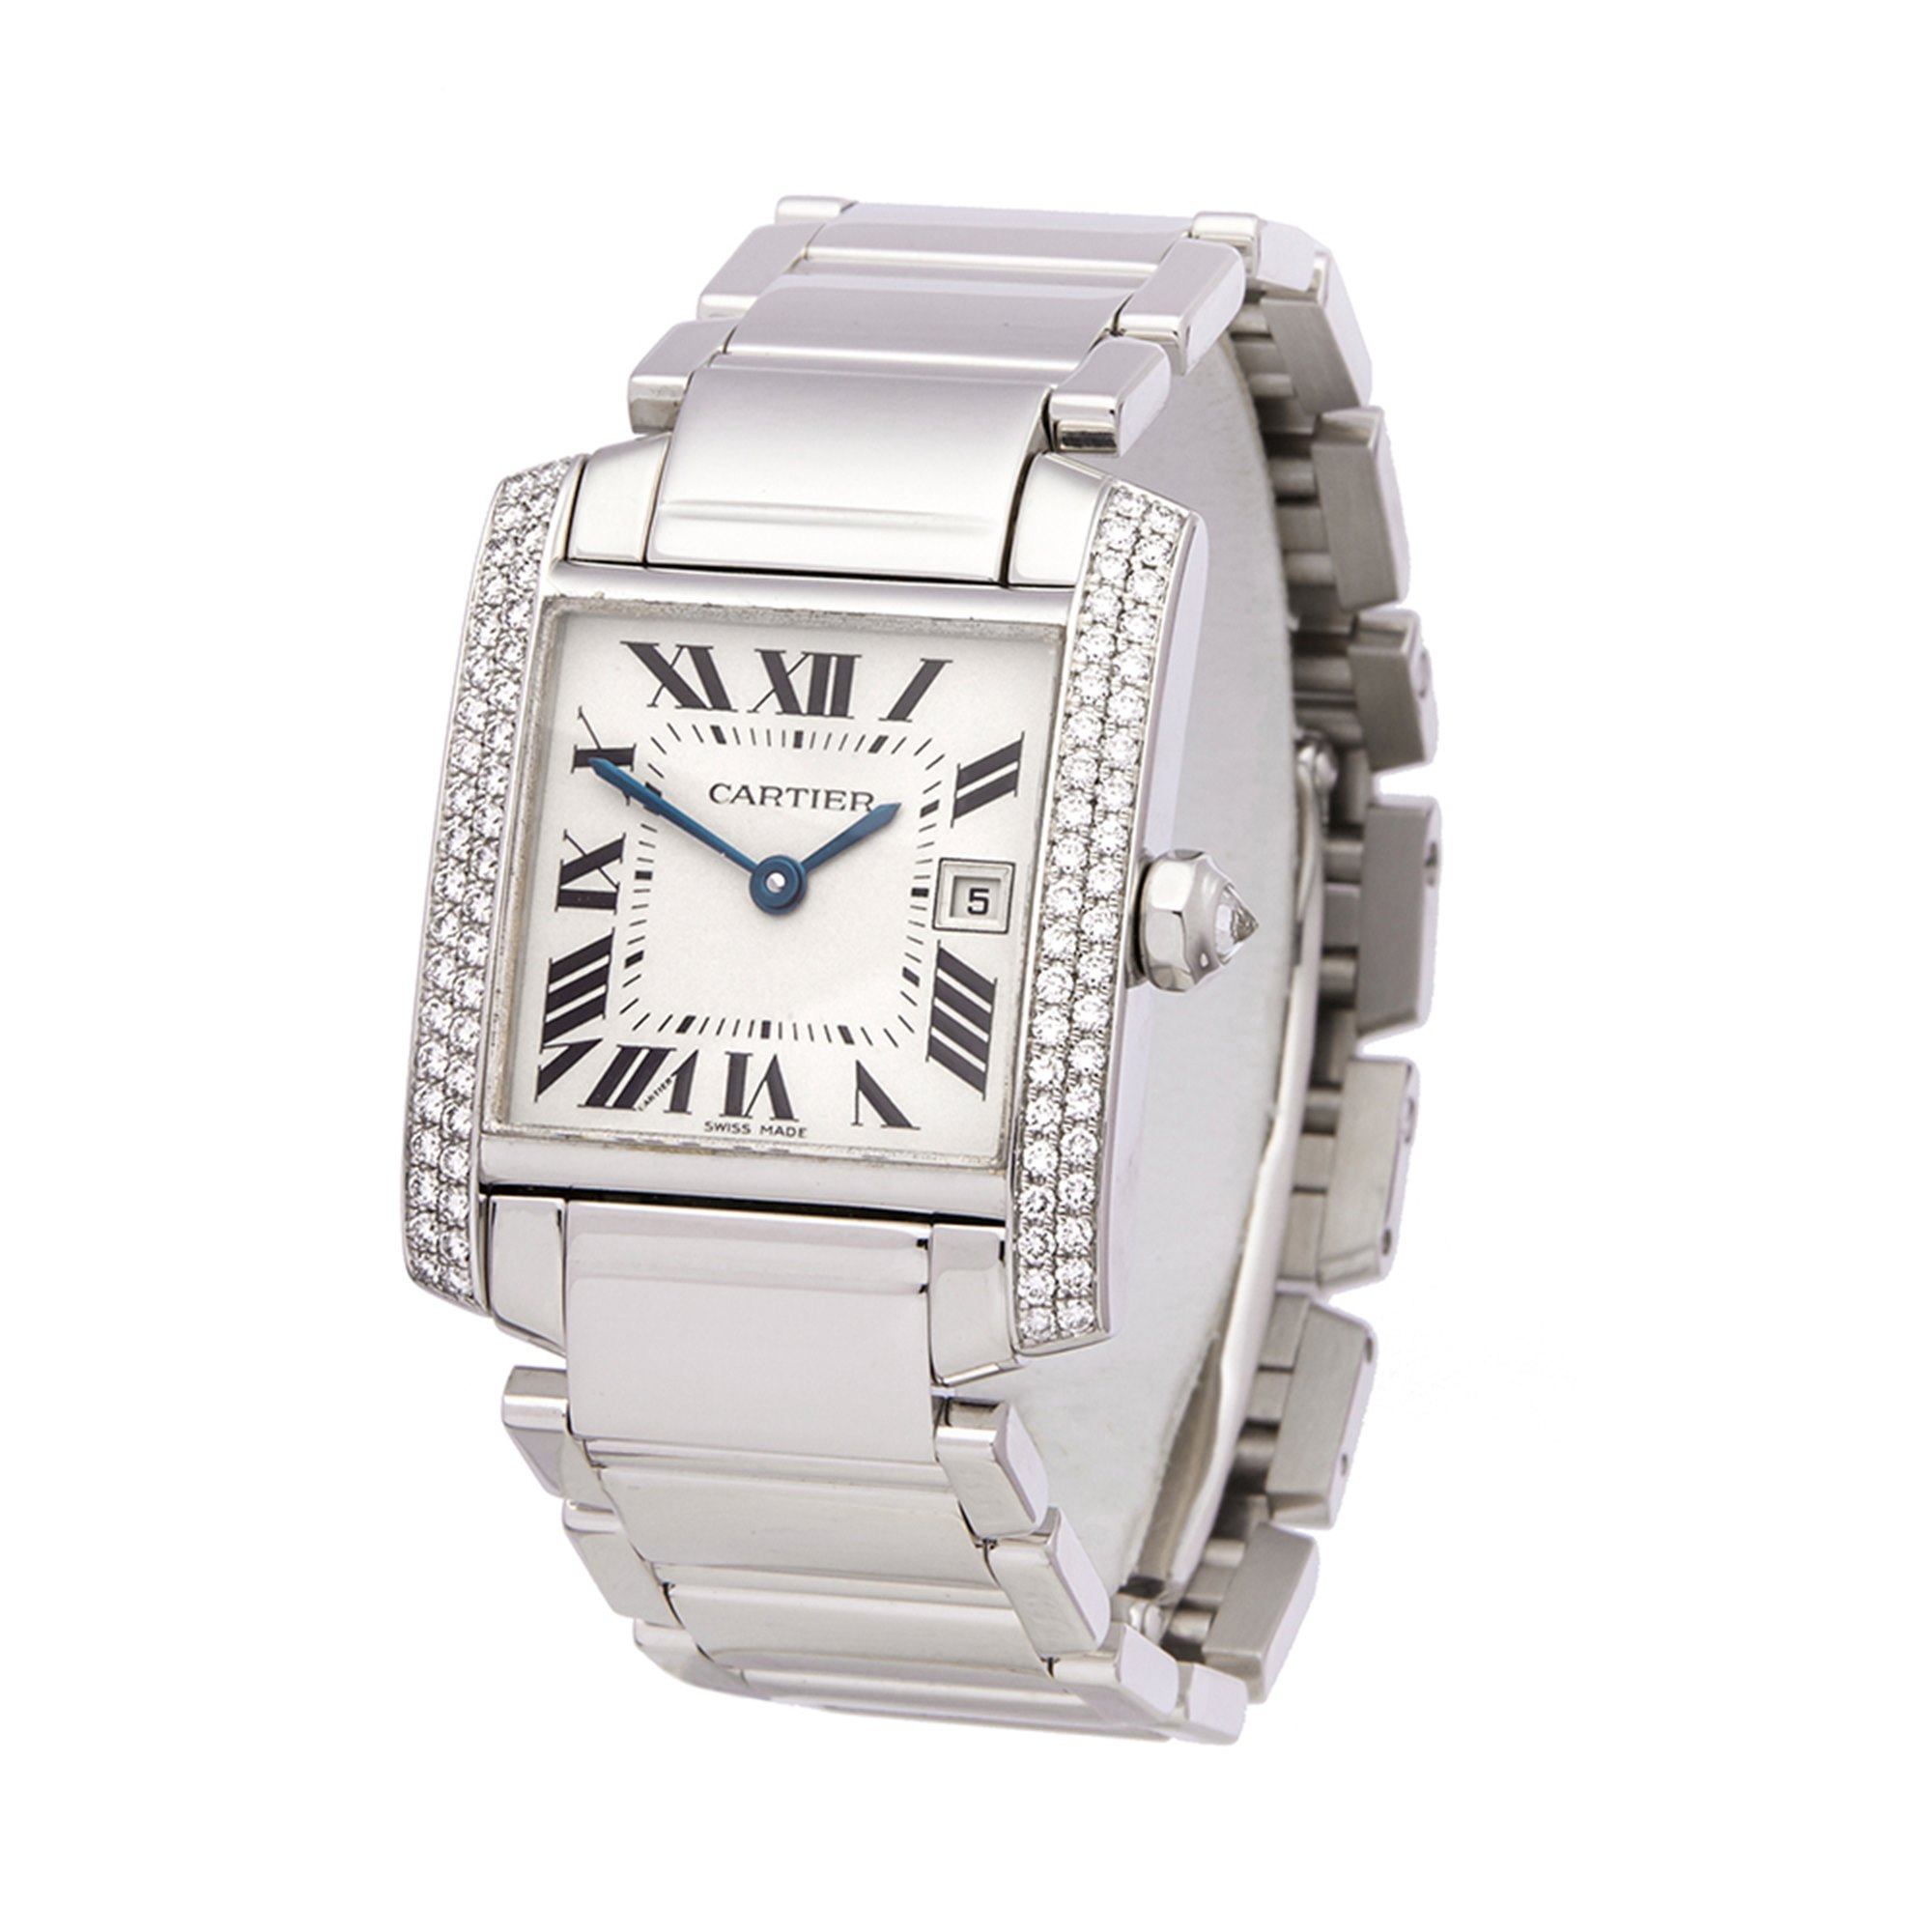 Cartier Tank Francaise Diamond White Gold WE1018S3 or 2491